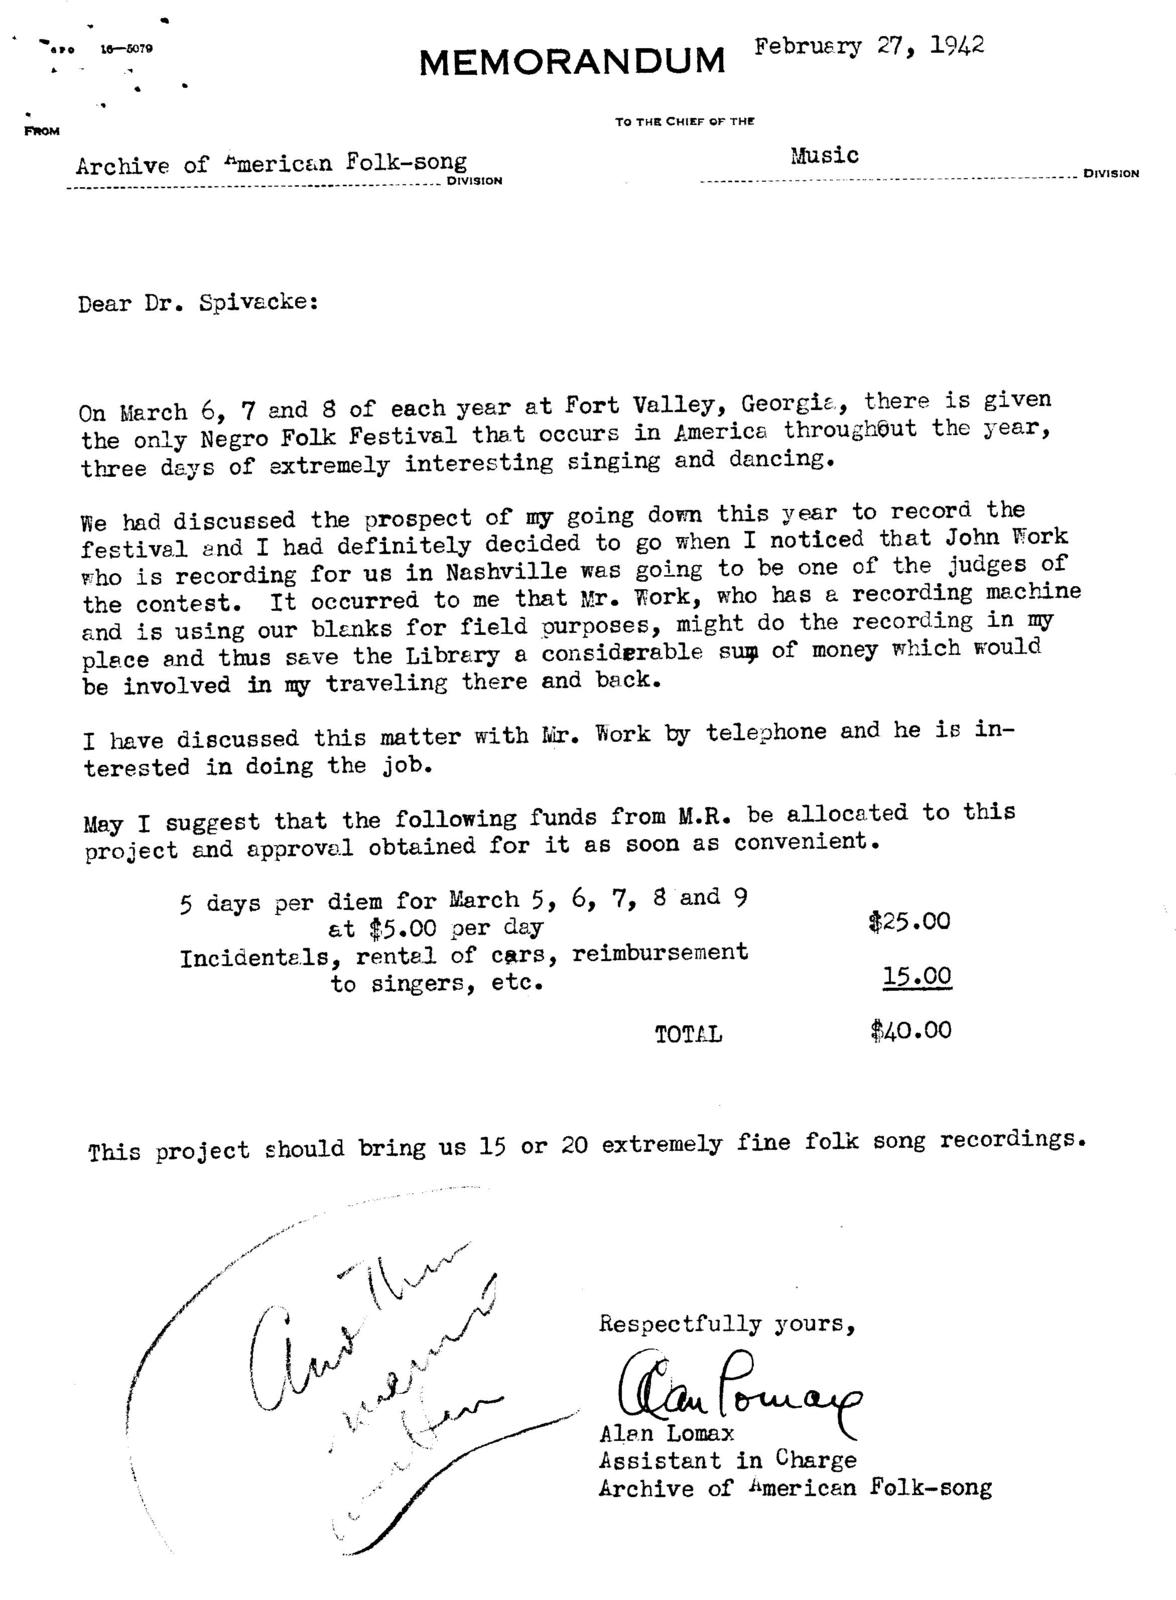 February 27, 1942, memo by Alan Lomax suggesting recording the Fort Valley Festival